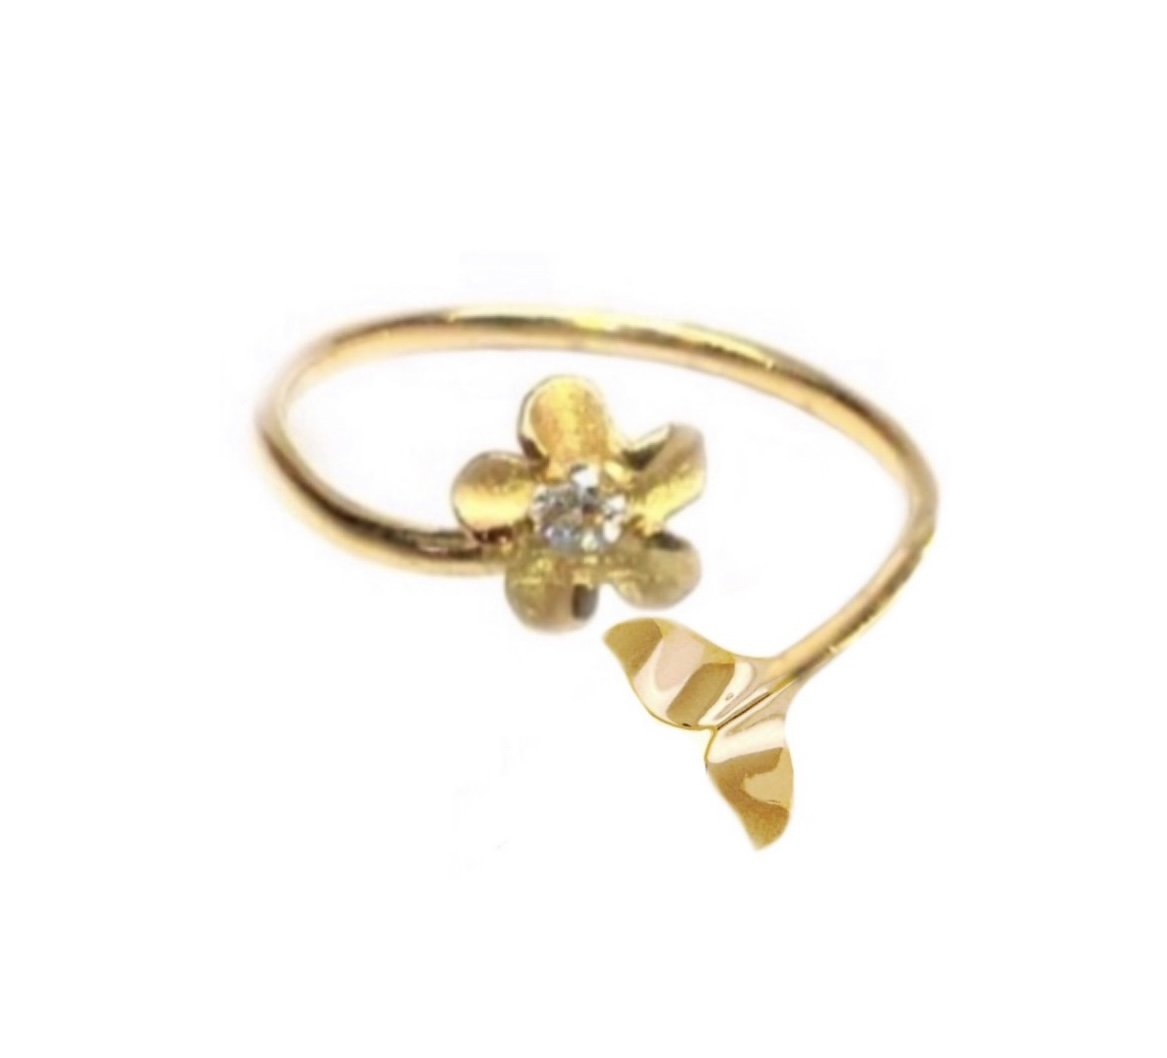 Ring > Plumeria Flower & Whale Tail Ring / Toe Ring - Gold